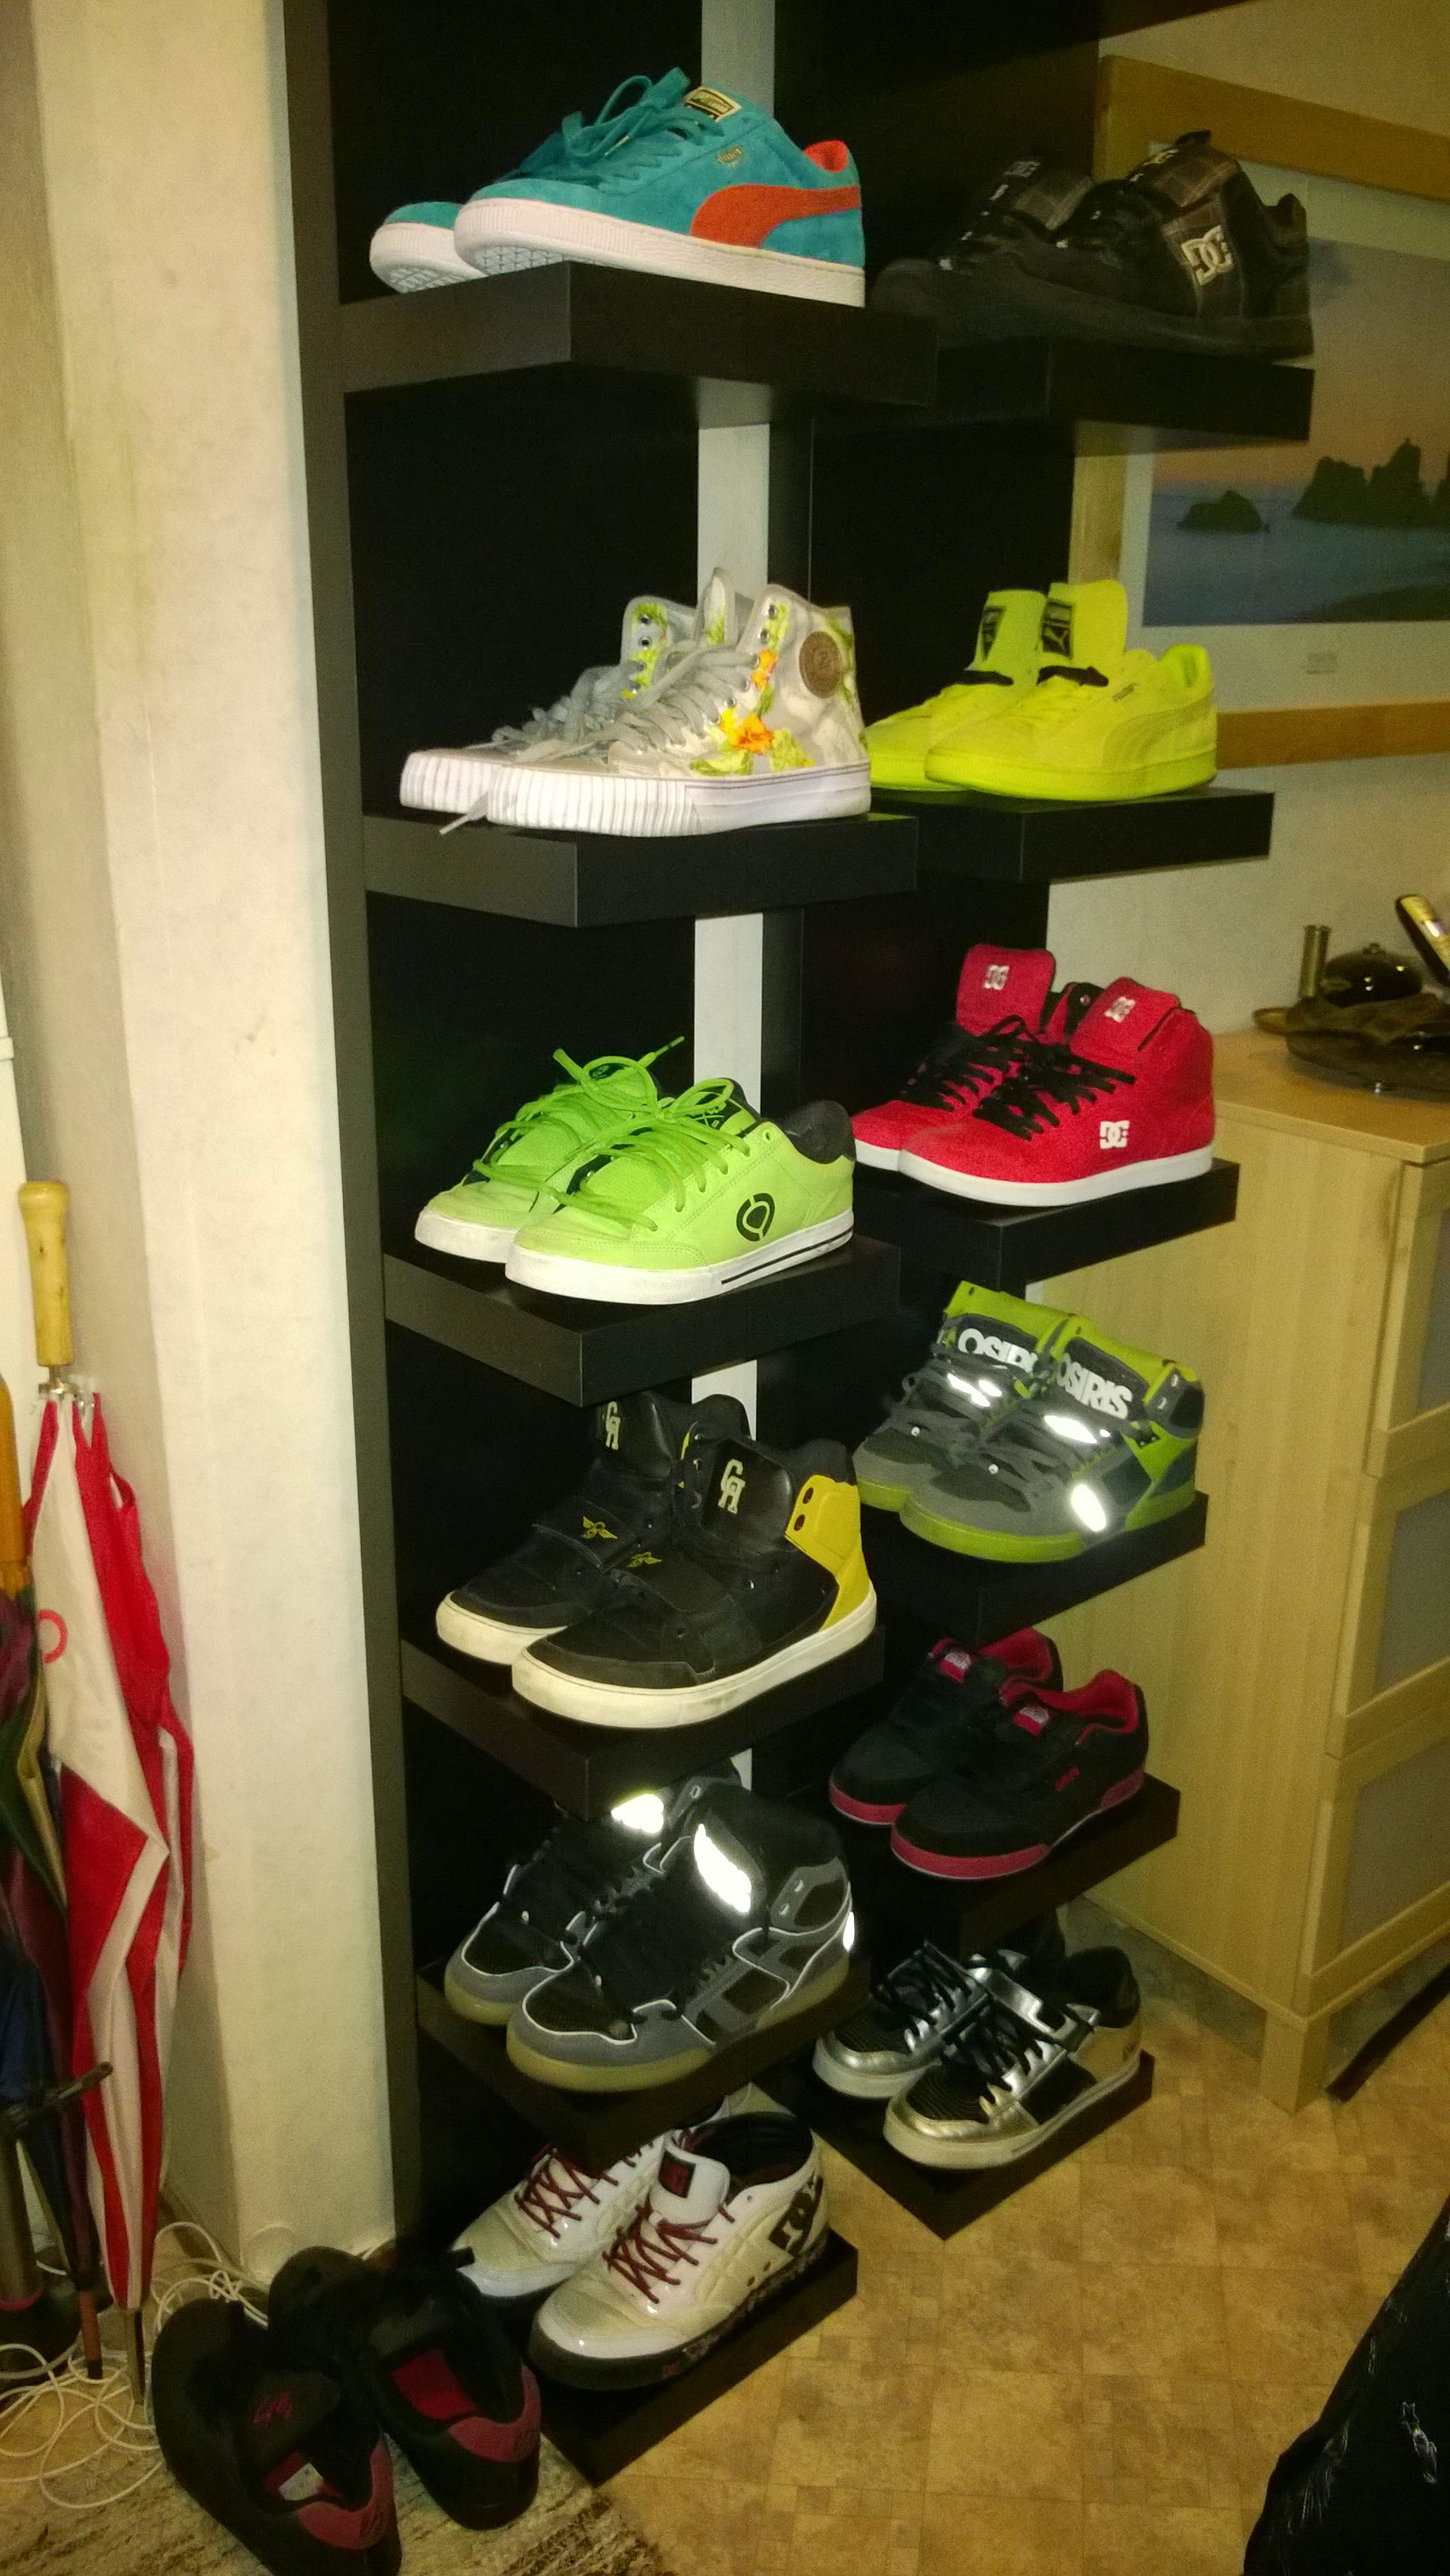 own diy shoe shelf made from ikea lack house floating wall shelves for shoes kijaro chair hidden gun cabinet sneaker storage shower liners bench canadian tire hanging square